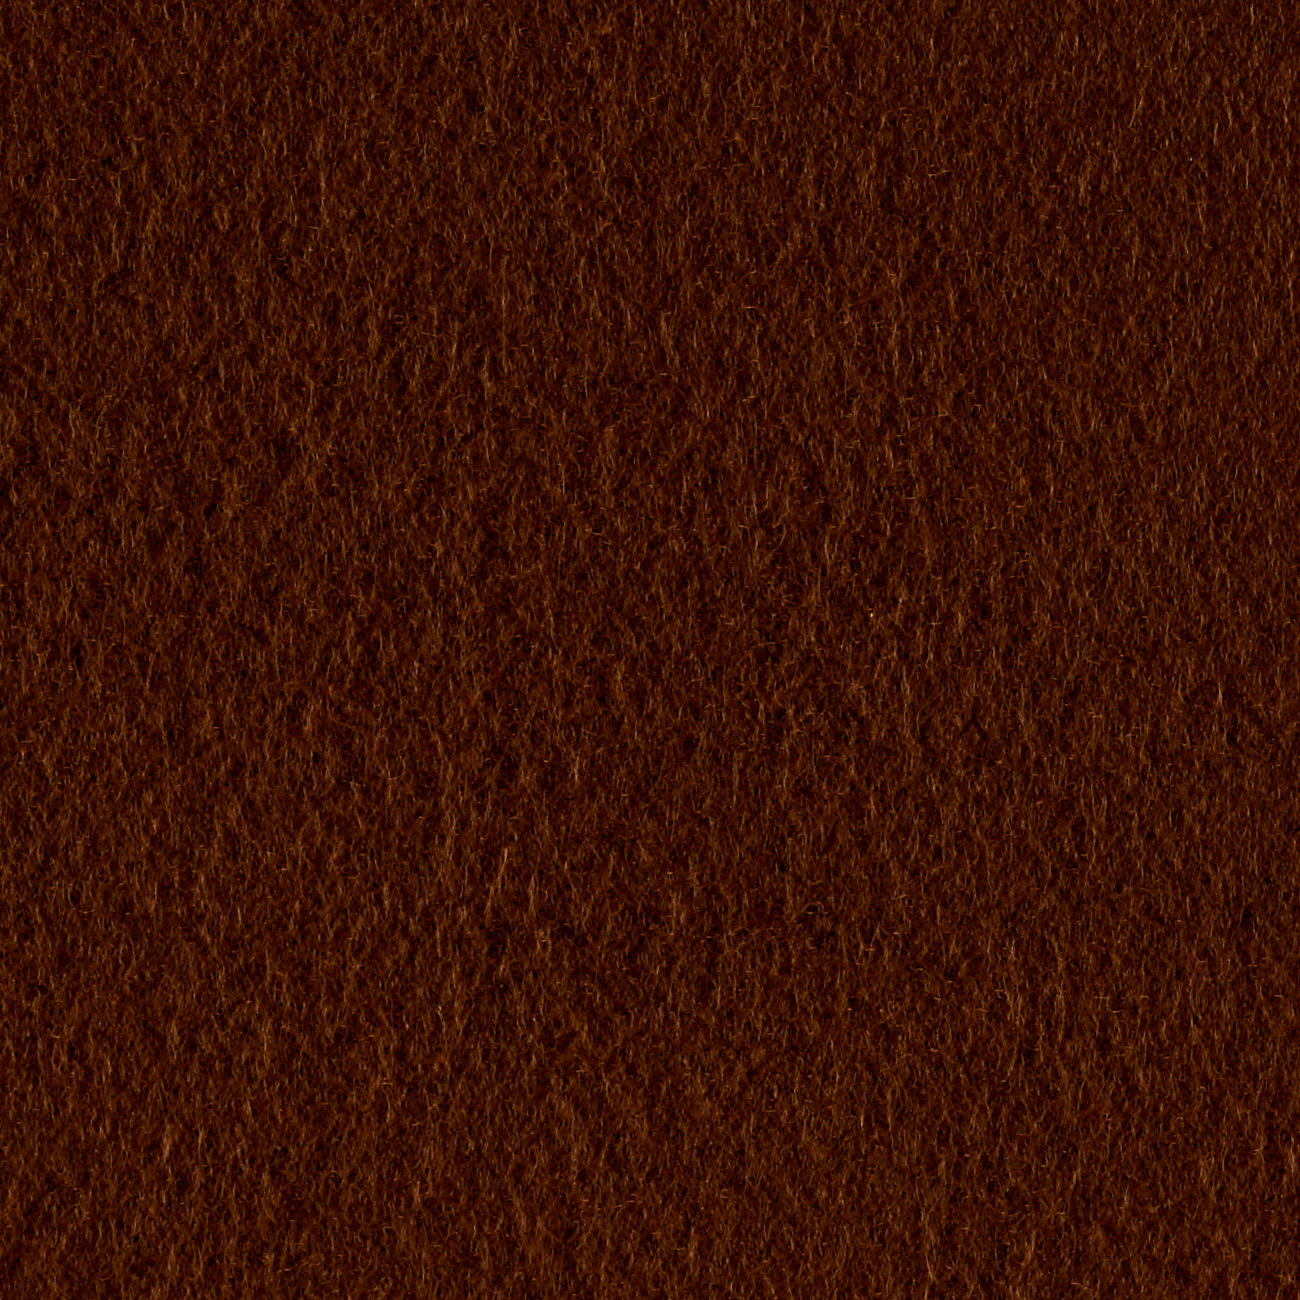 Polar Fleece Solid Brown Fabric by Newcastle in USA